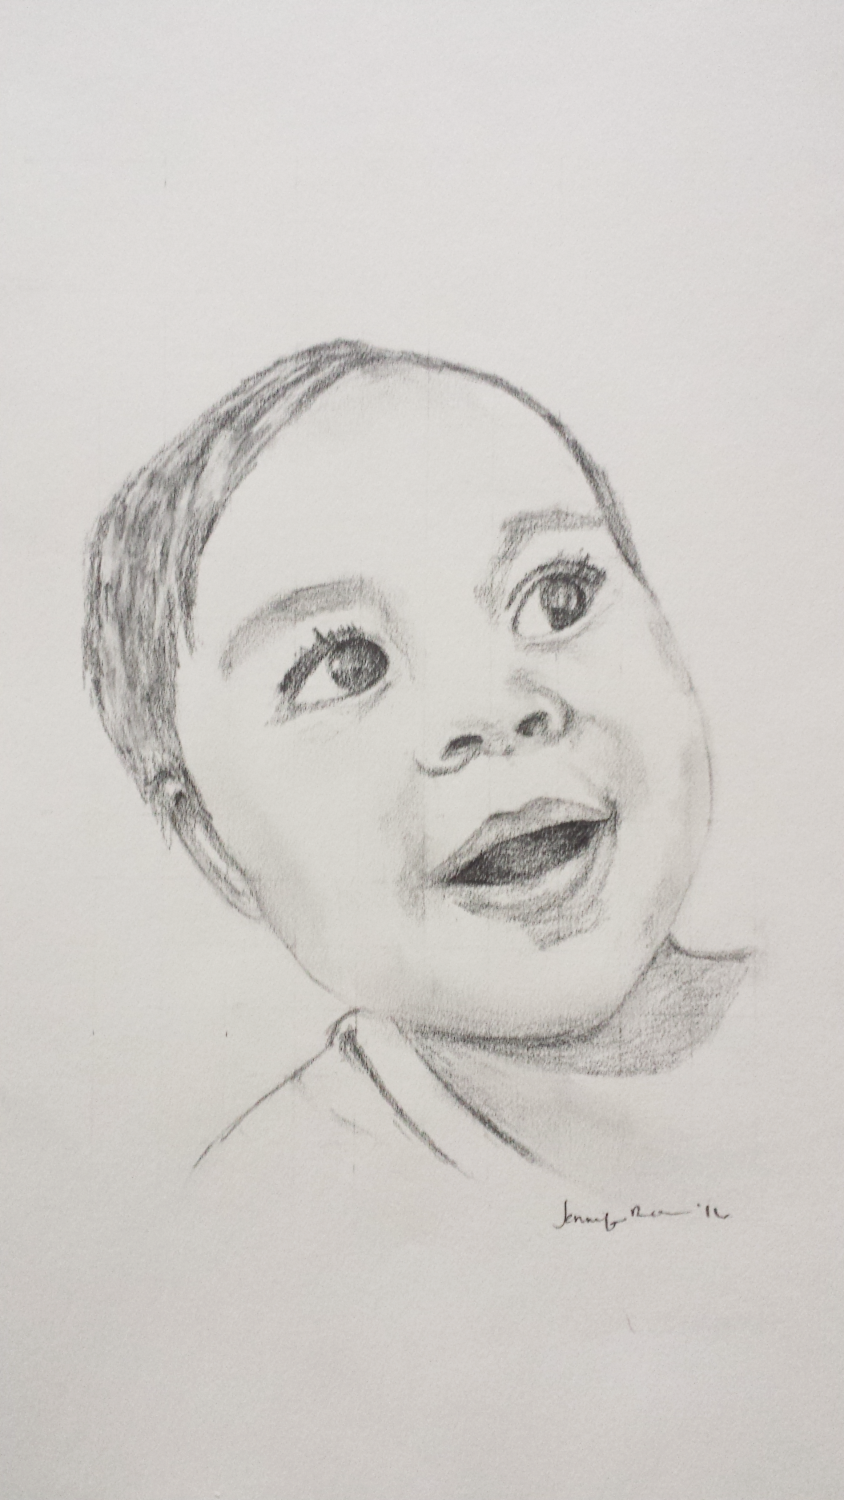 Lisi in graphite